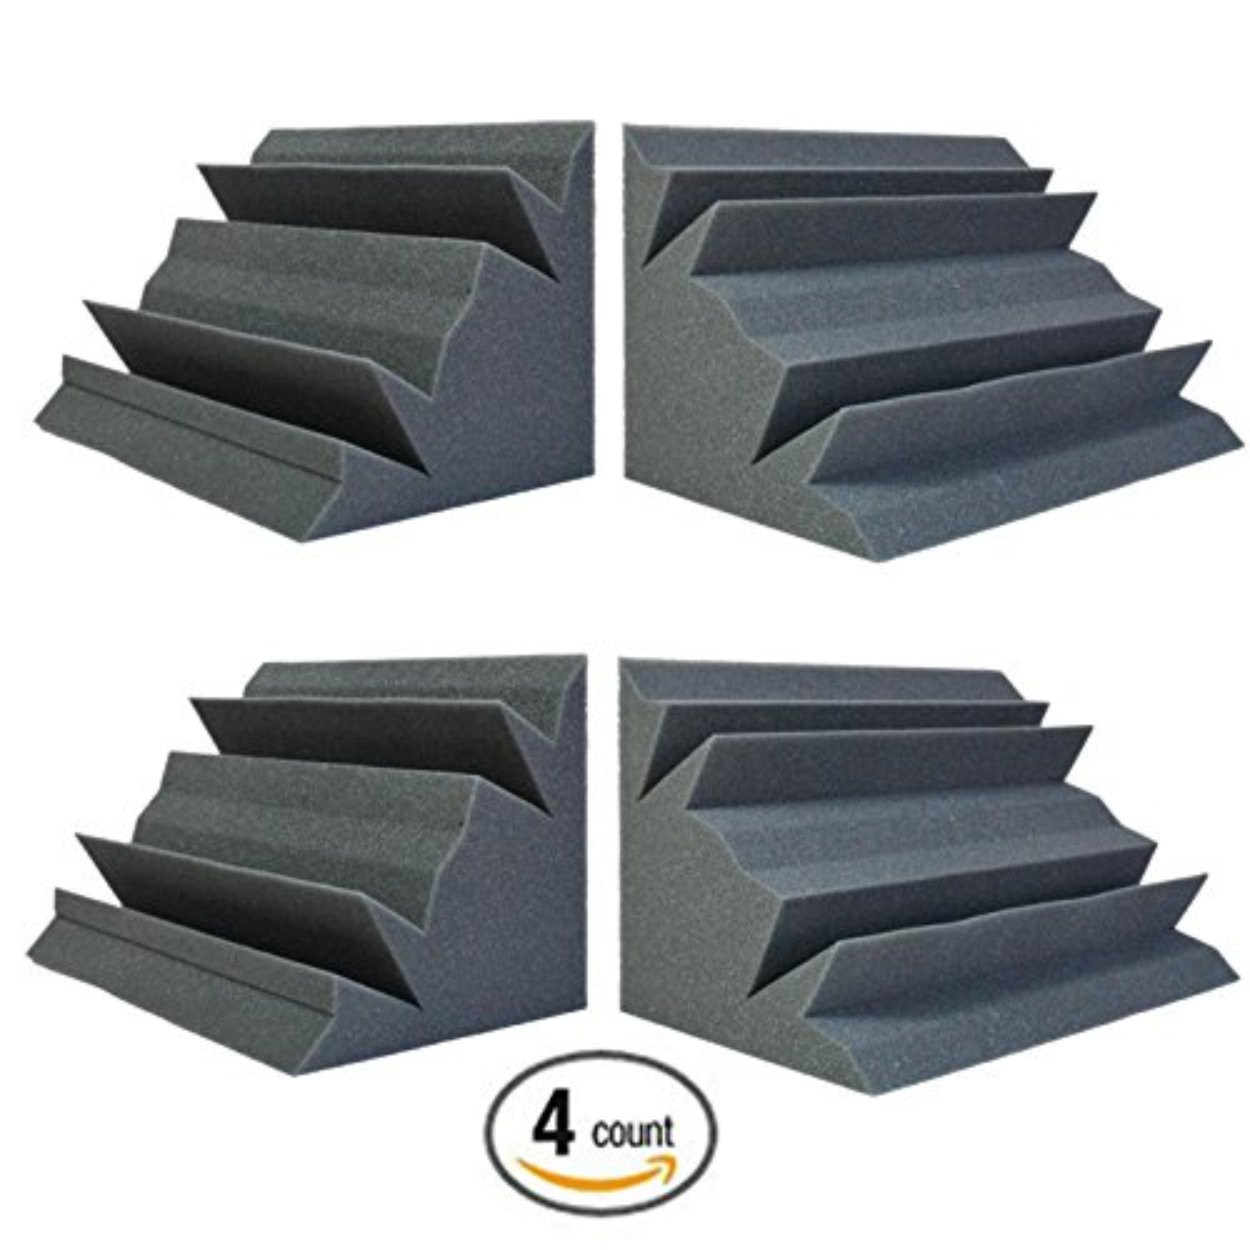 Acoustic Foam Bass Trap Studio Corner Wall 12'' X 7'' X 7'' (4 PACK) by Foamily